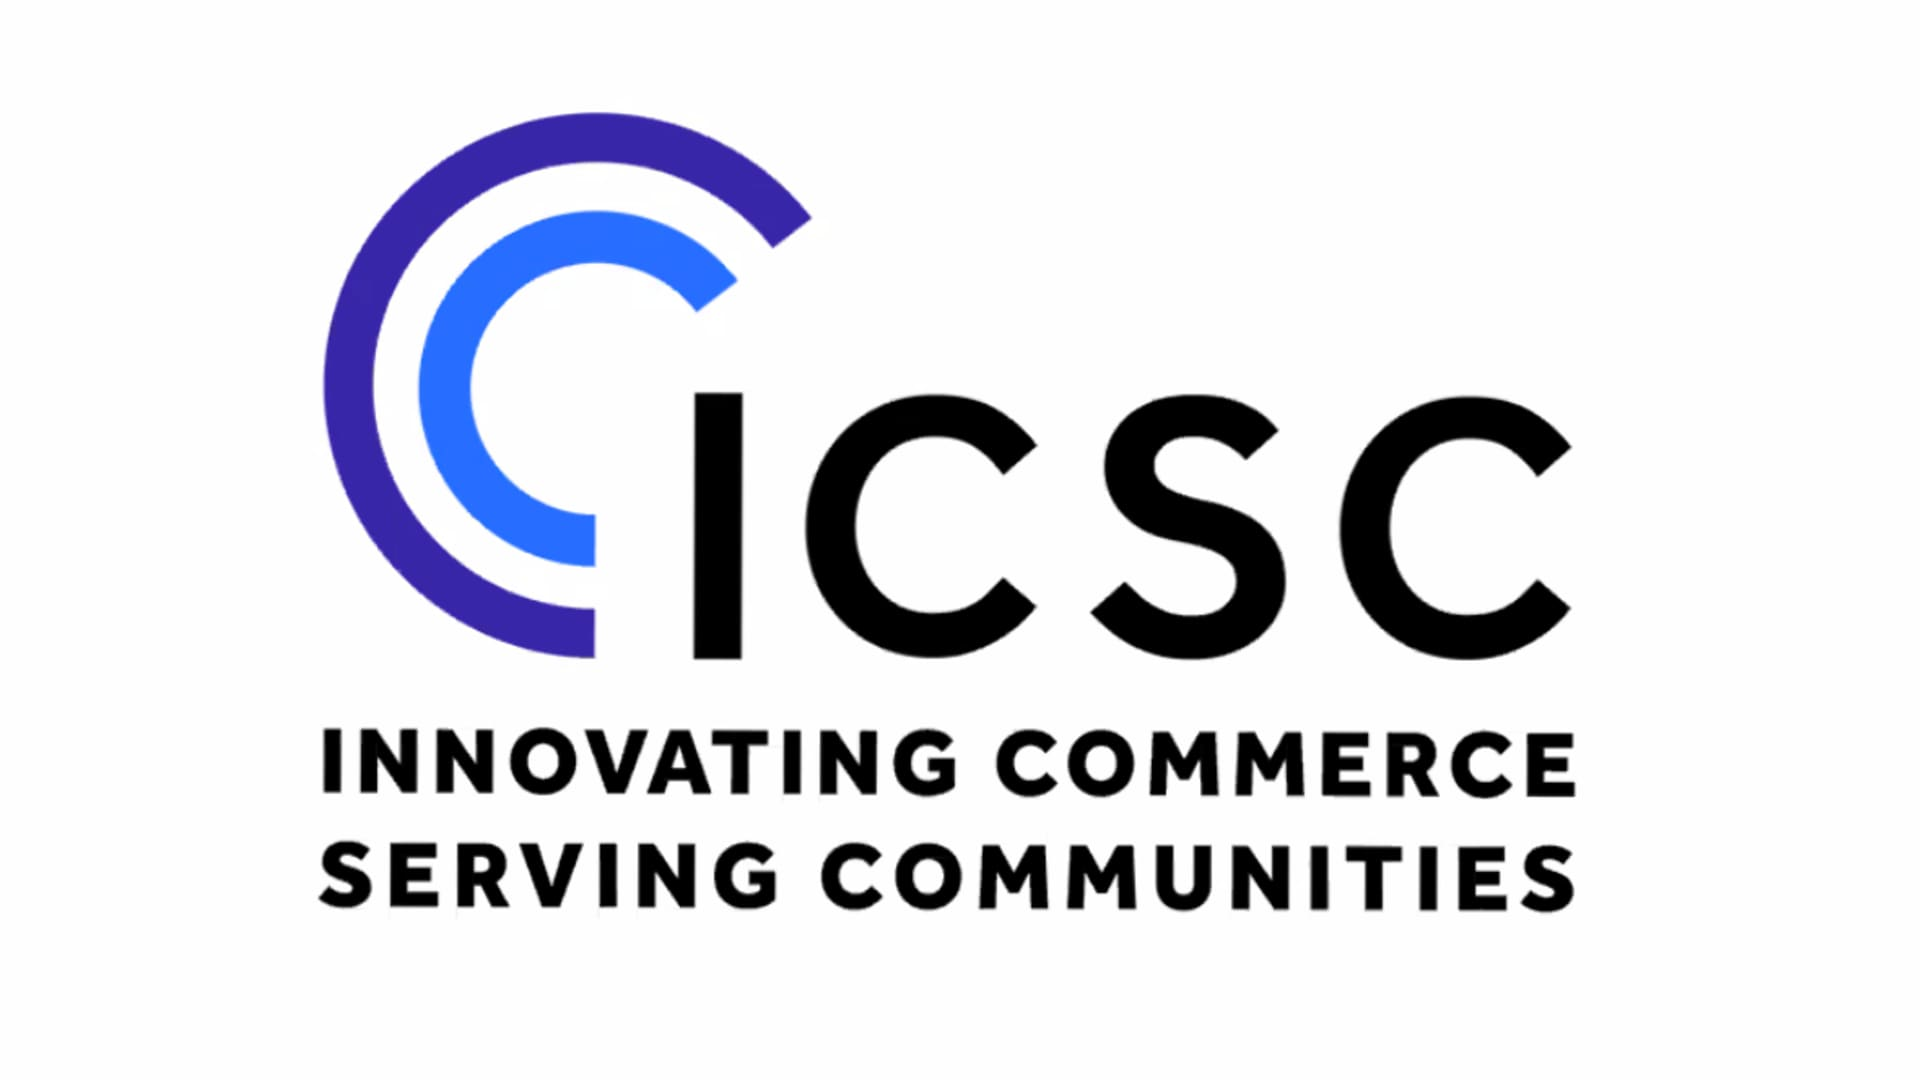 The International Council of Shopping Centers has rebranded its name, ICSC, to stand for Innovating Commerce Serving Communities.